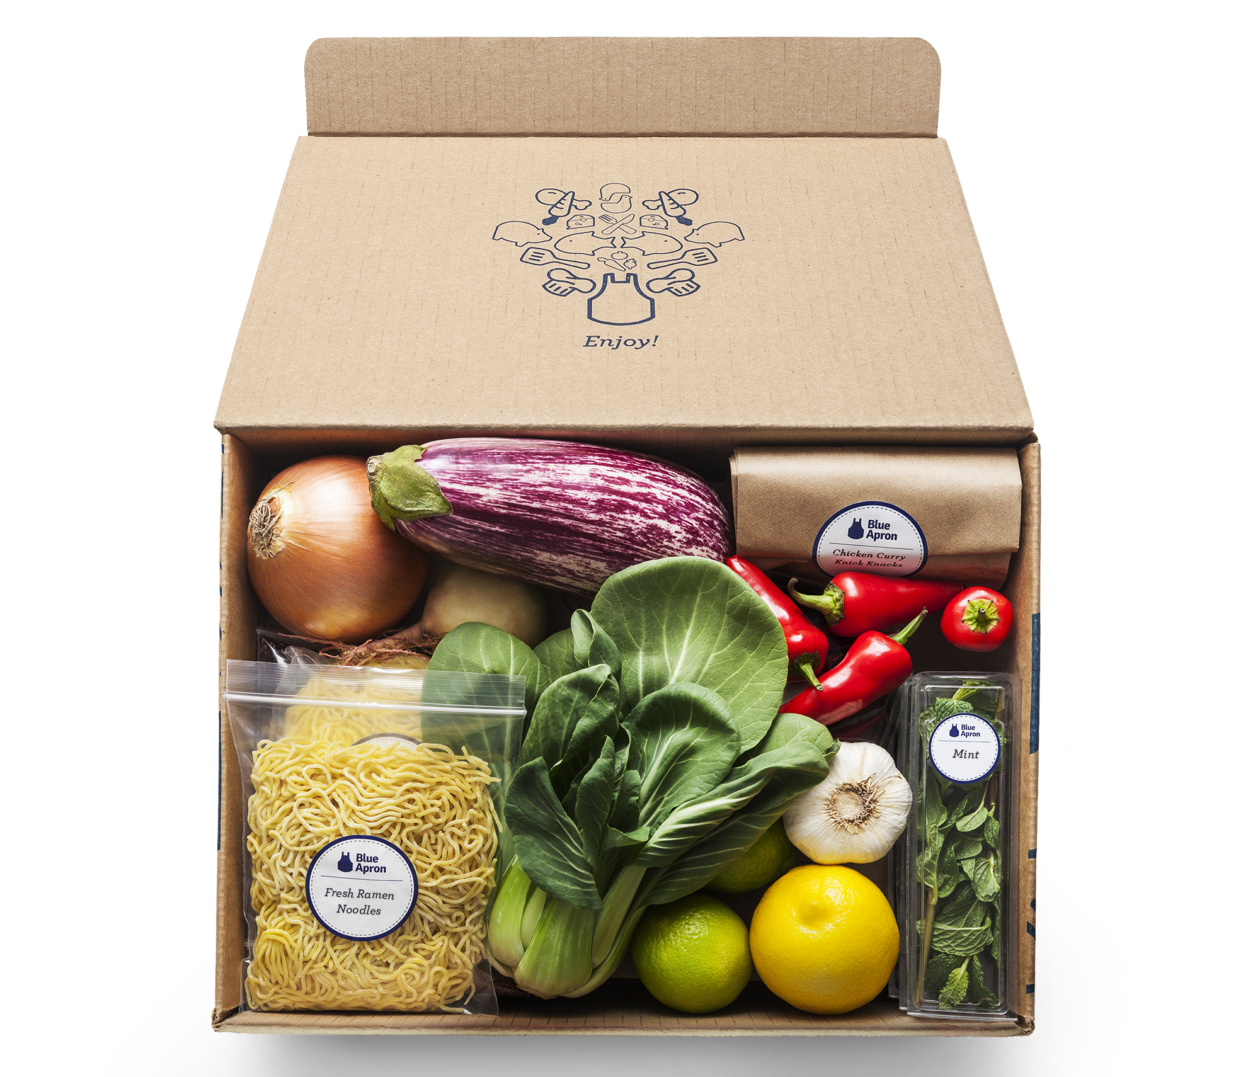 meal kit delivery company blue apron cutting 1 270 jobs as competition with amazon heats up. Black Bedroom Furniture Sets. Home Design Ideas